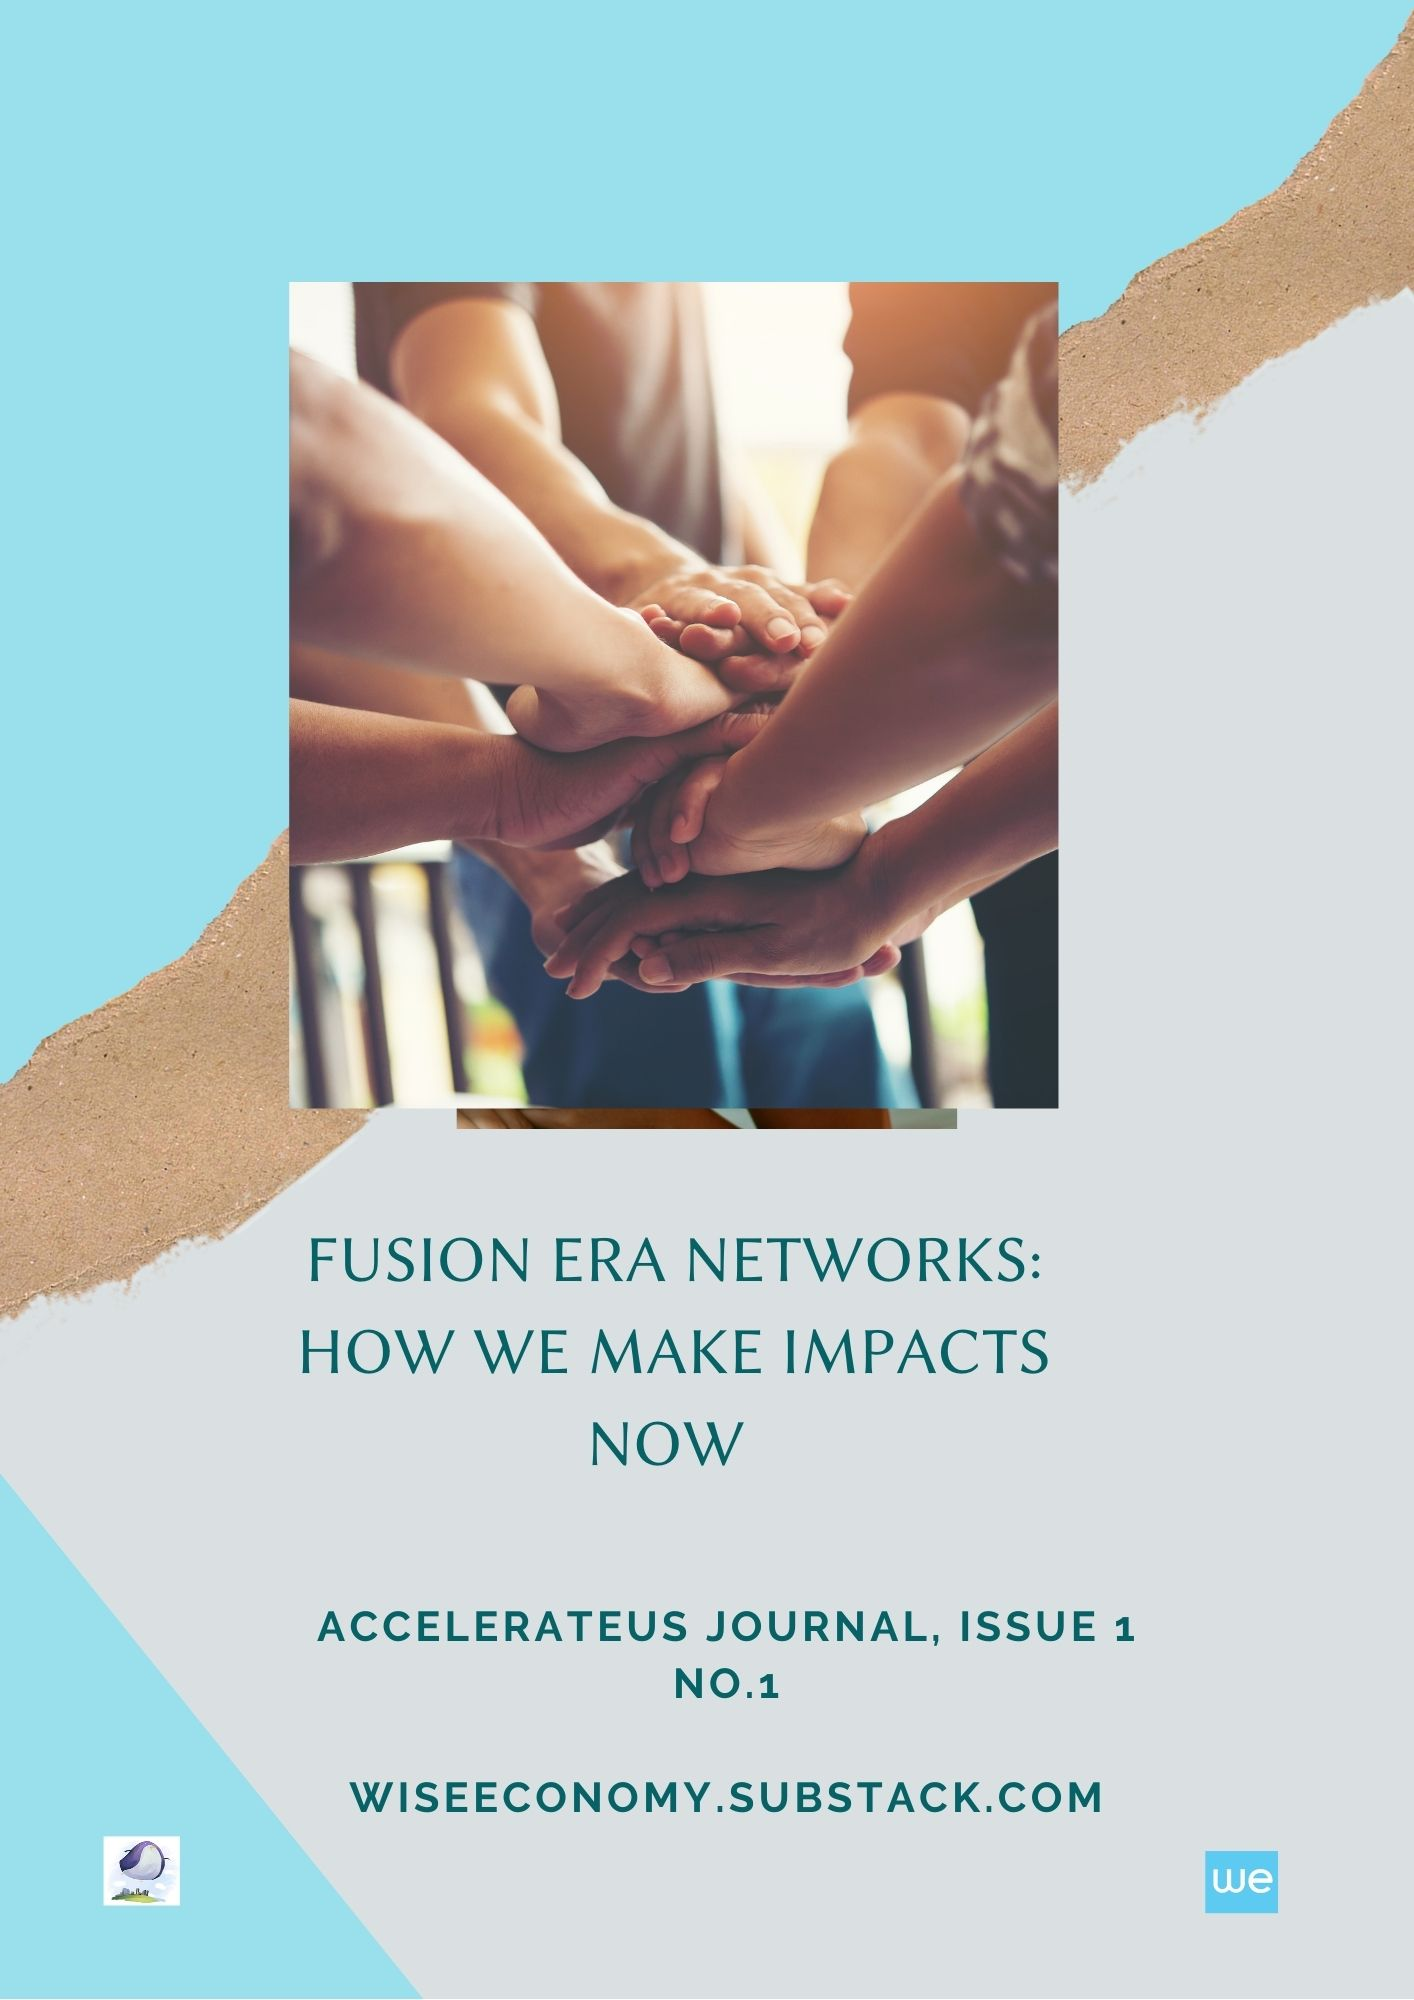 fusion-era-networks-how-we-make-impacts-now